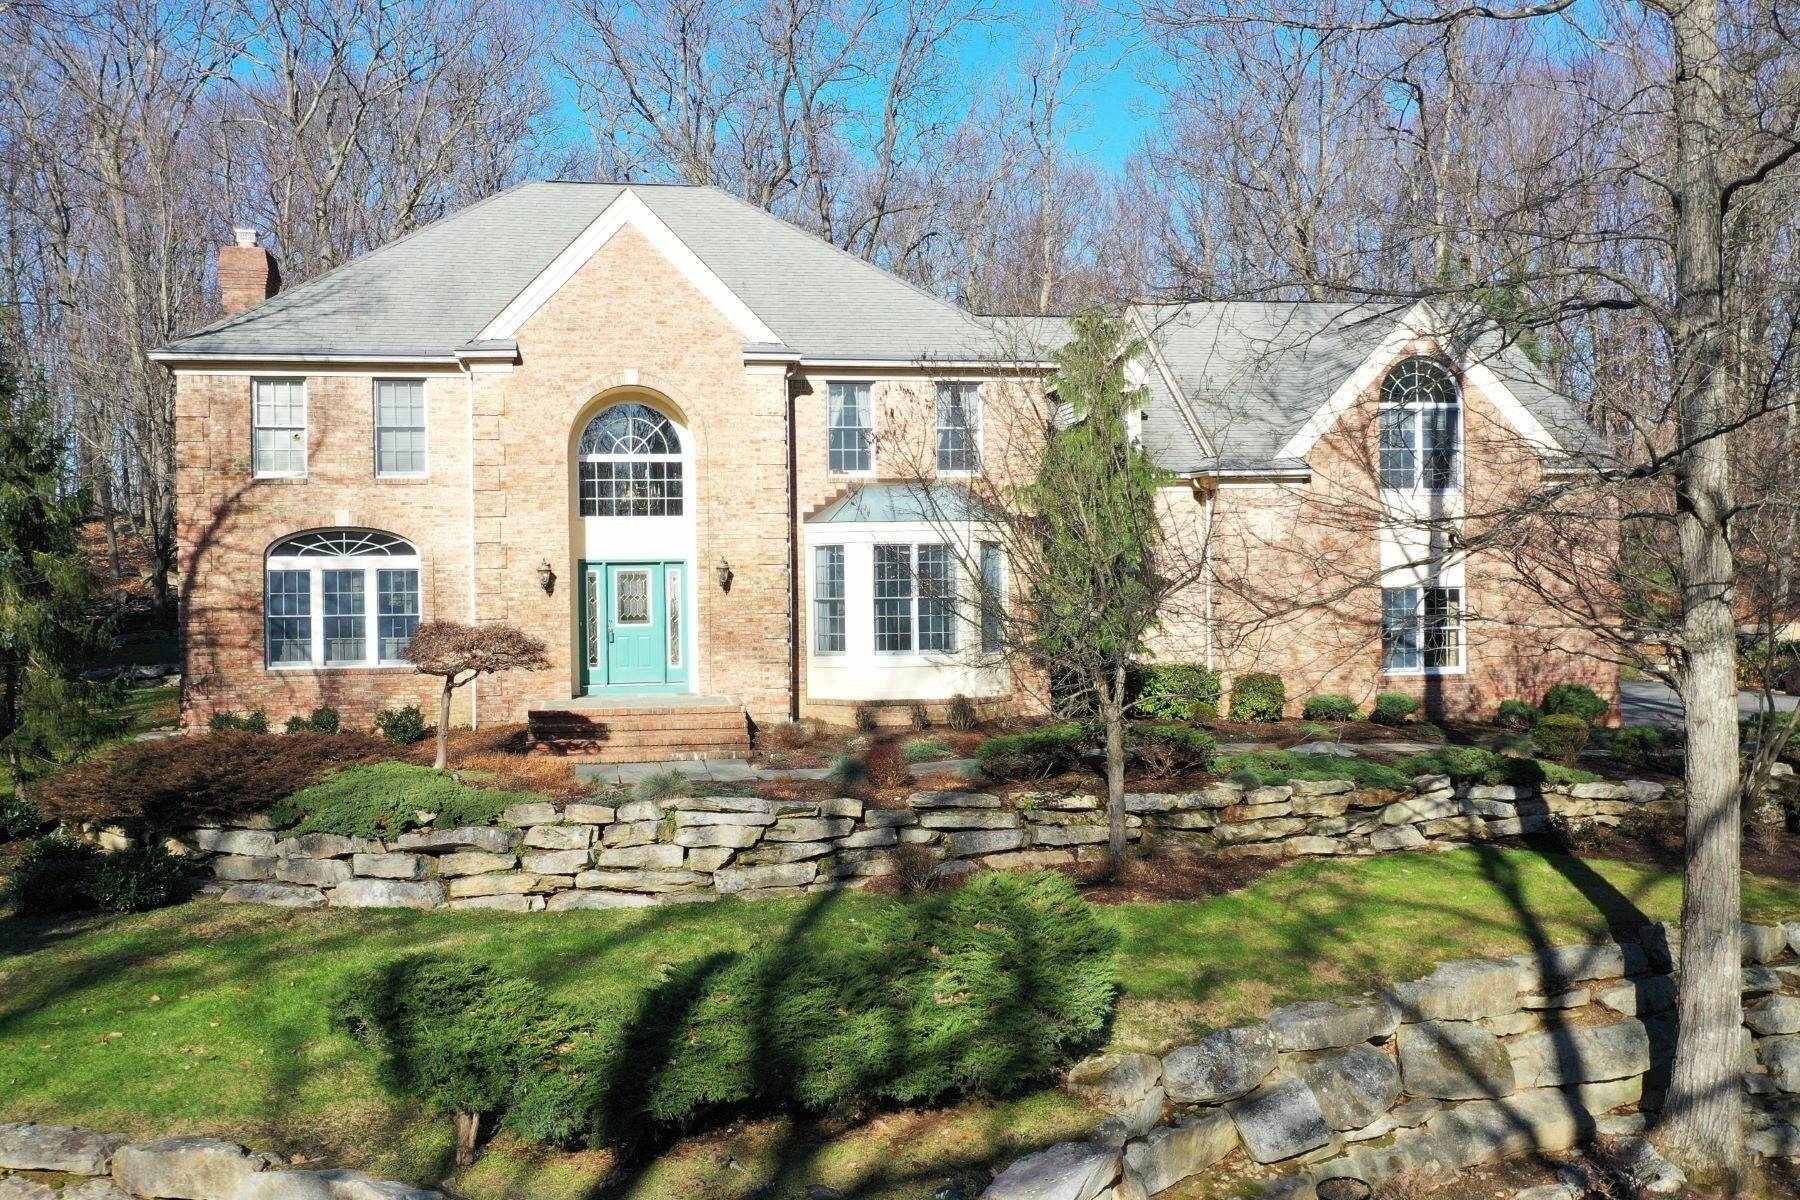 Single Family Homes for Sale at Striking Colonial with Dramatic Curb Appeal 17 Abedim Way Long Valley, New Jersey 07853 United States